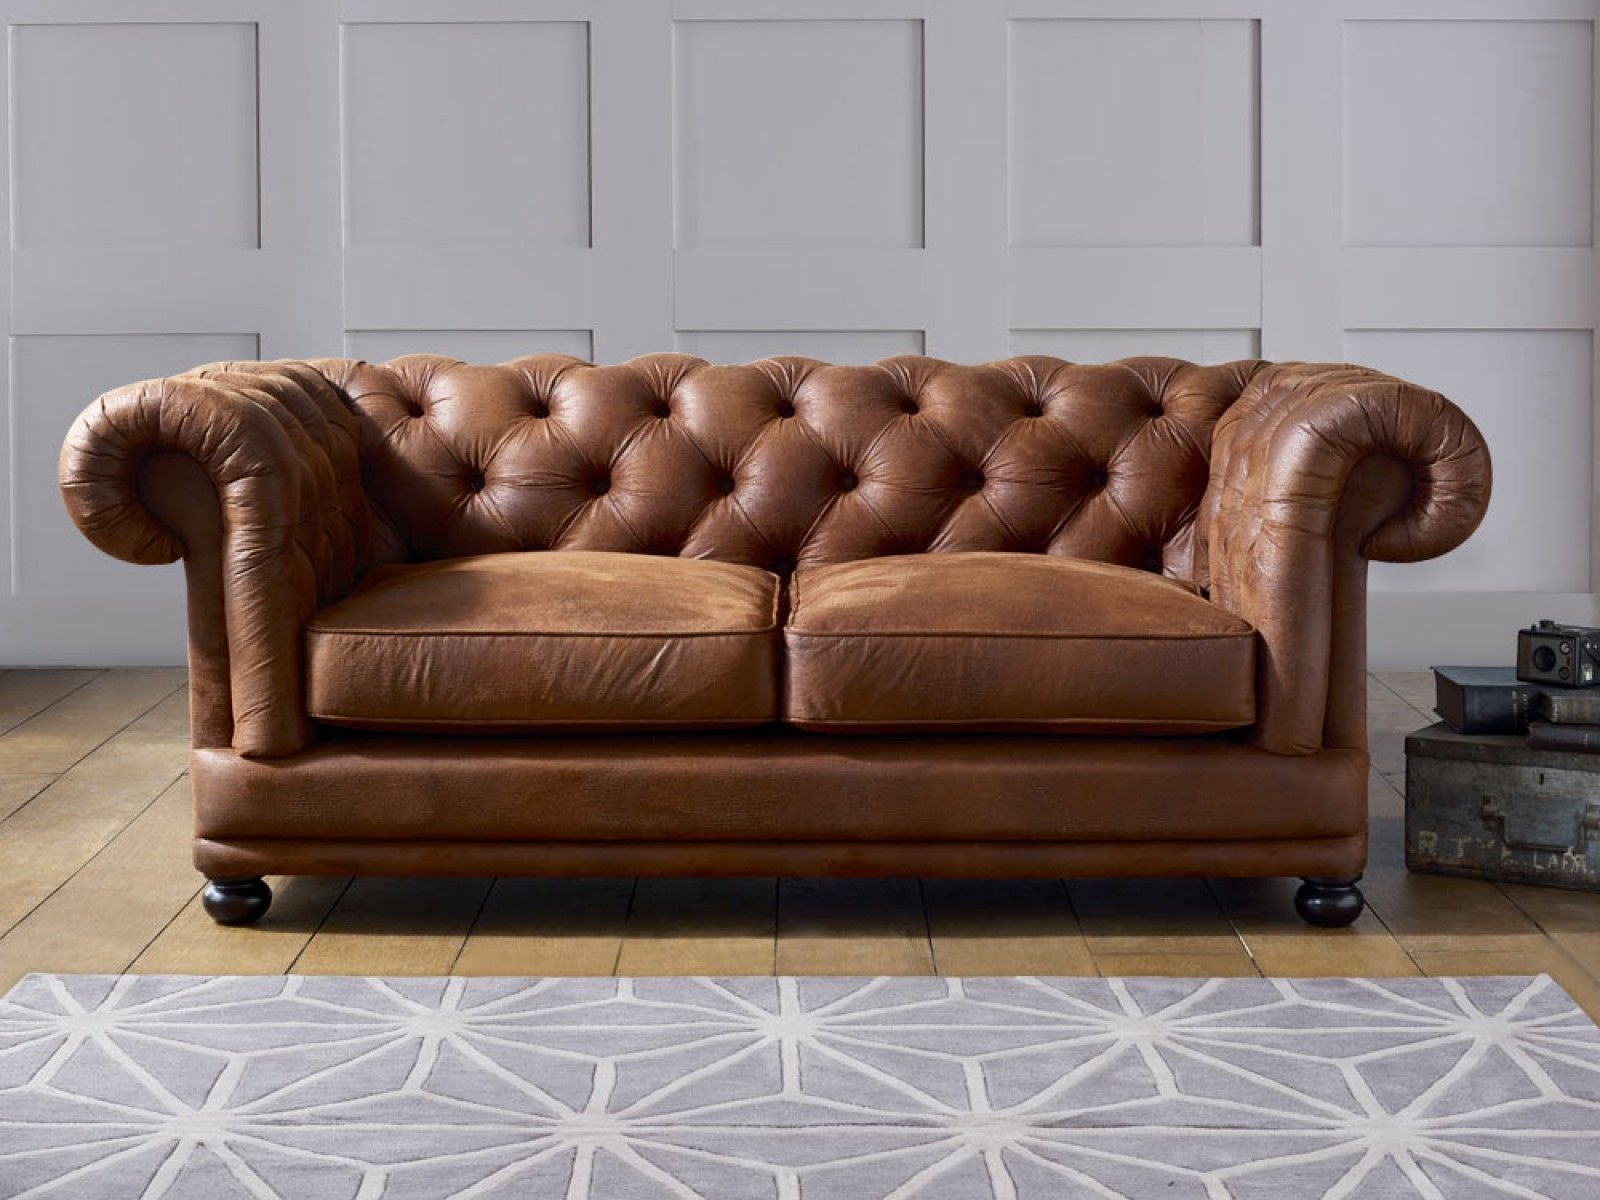 Faux Leather Sofa A Must Have For A Large Space Anlamli Net In 2020 Leather Couches For Sale Faux Leather Sofa Faux Leather Couch